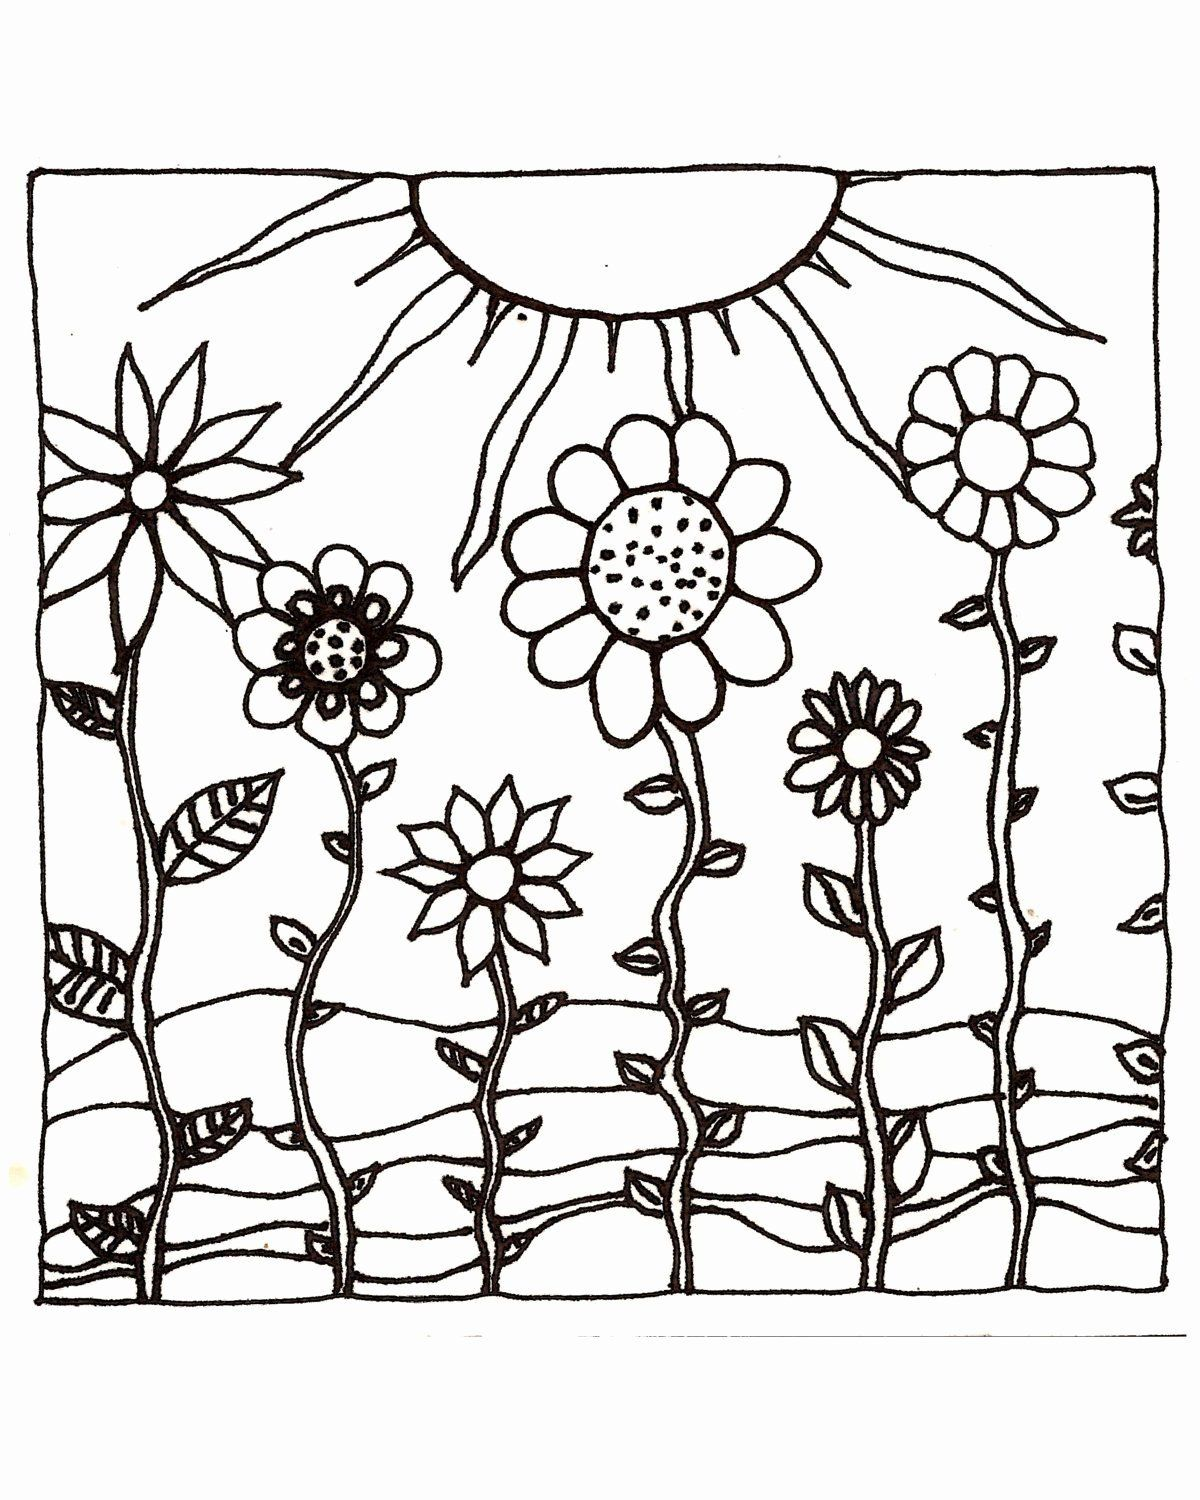 Sunset Coloring Pages For Adults En 2020 Coloriage Dessin